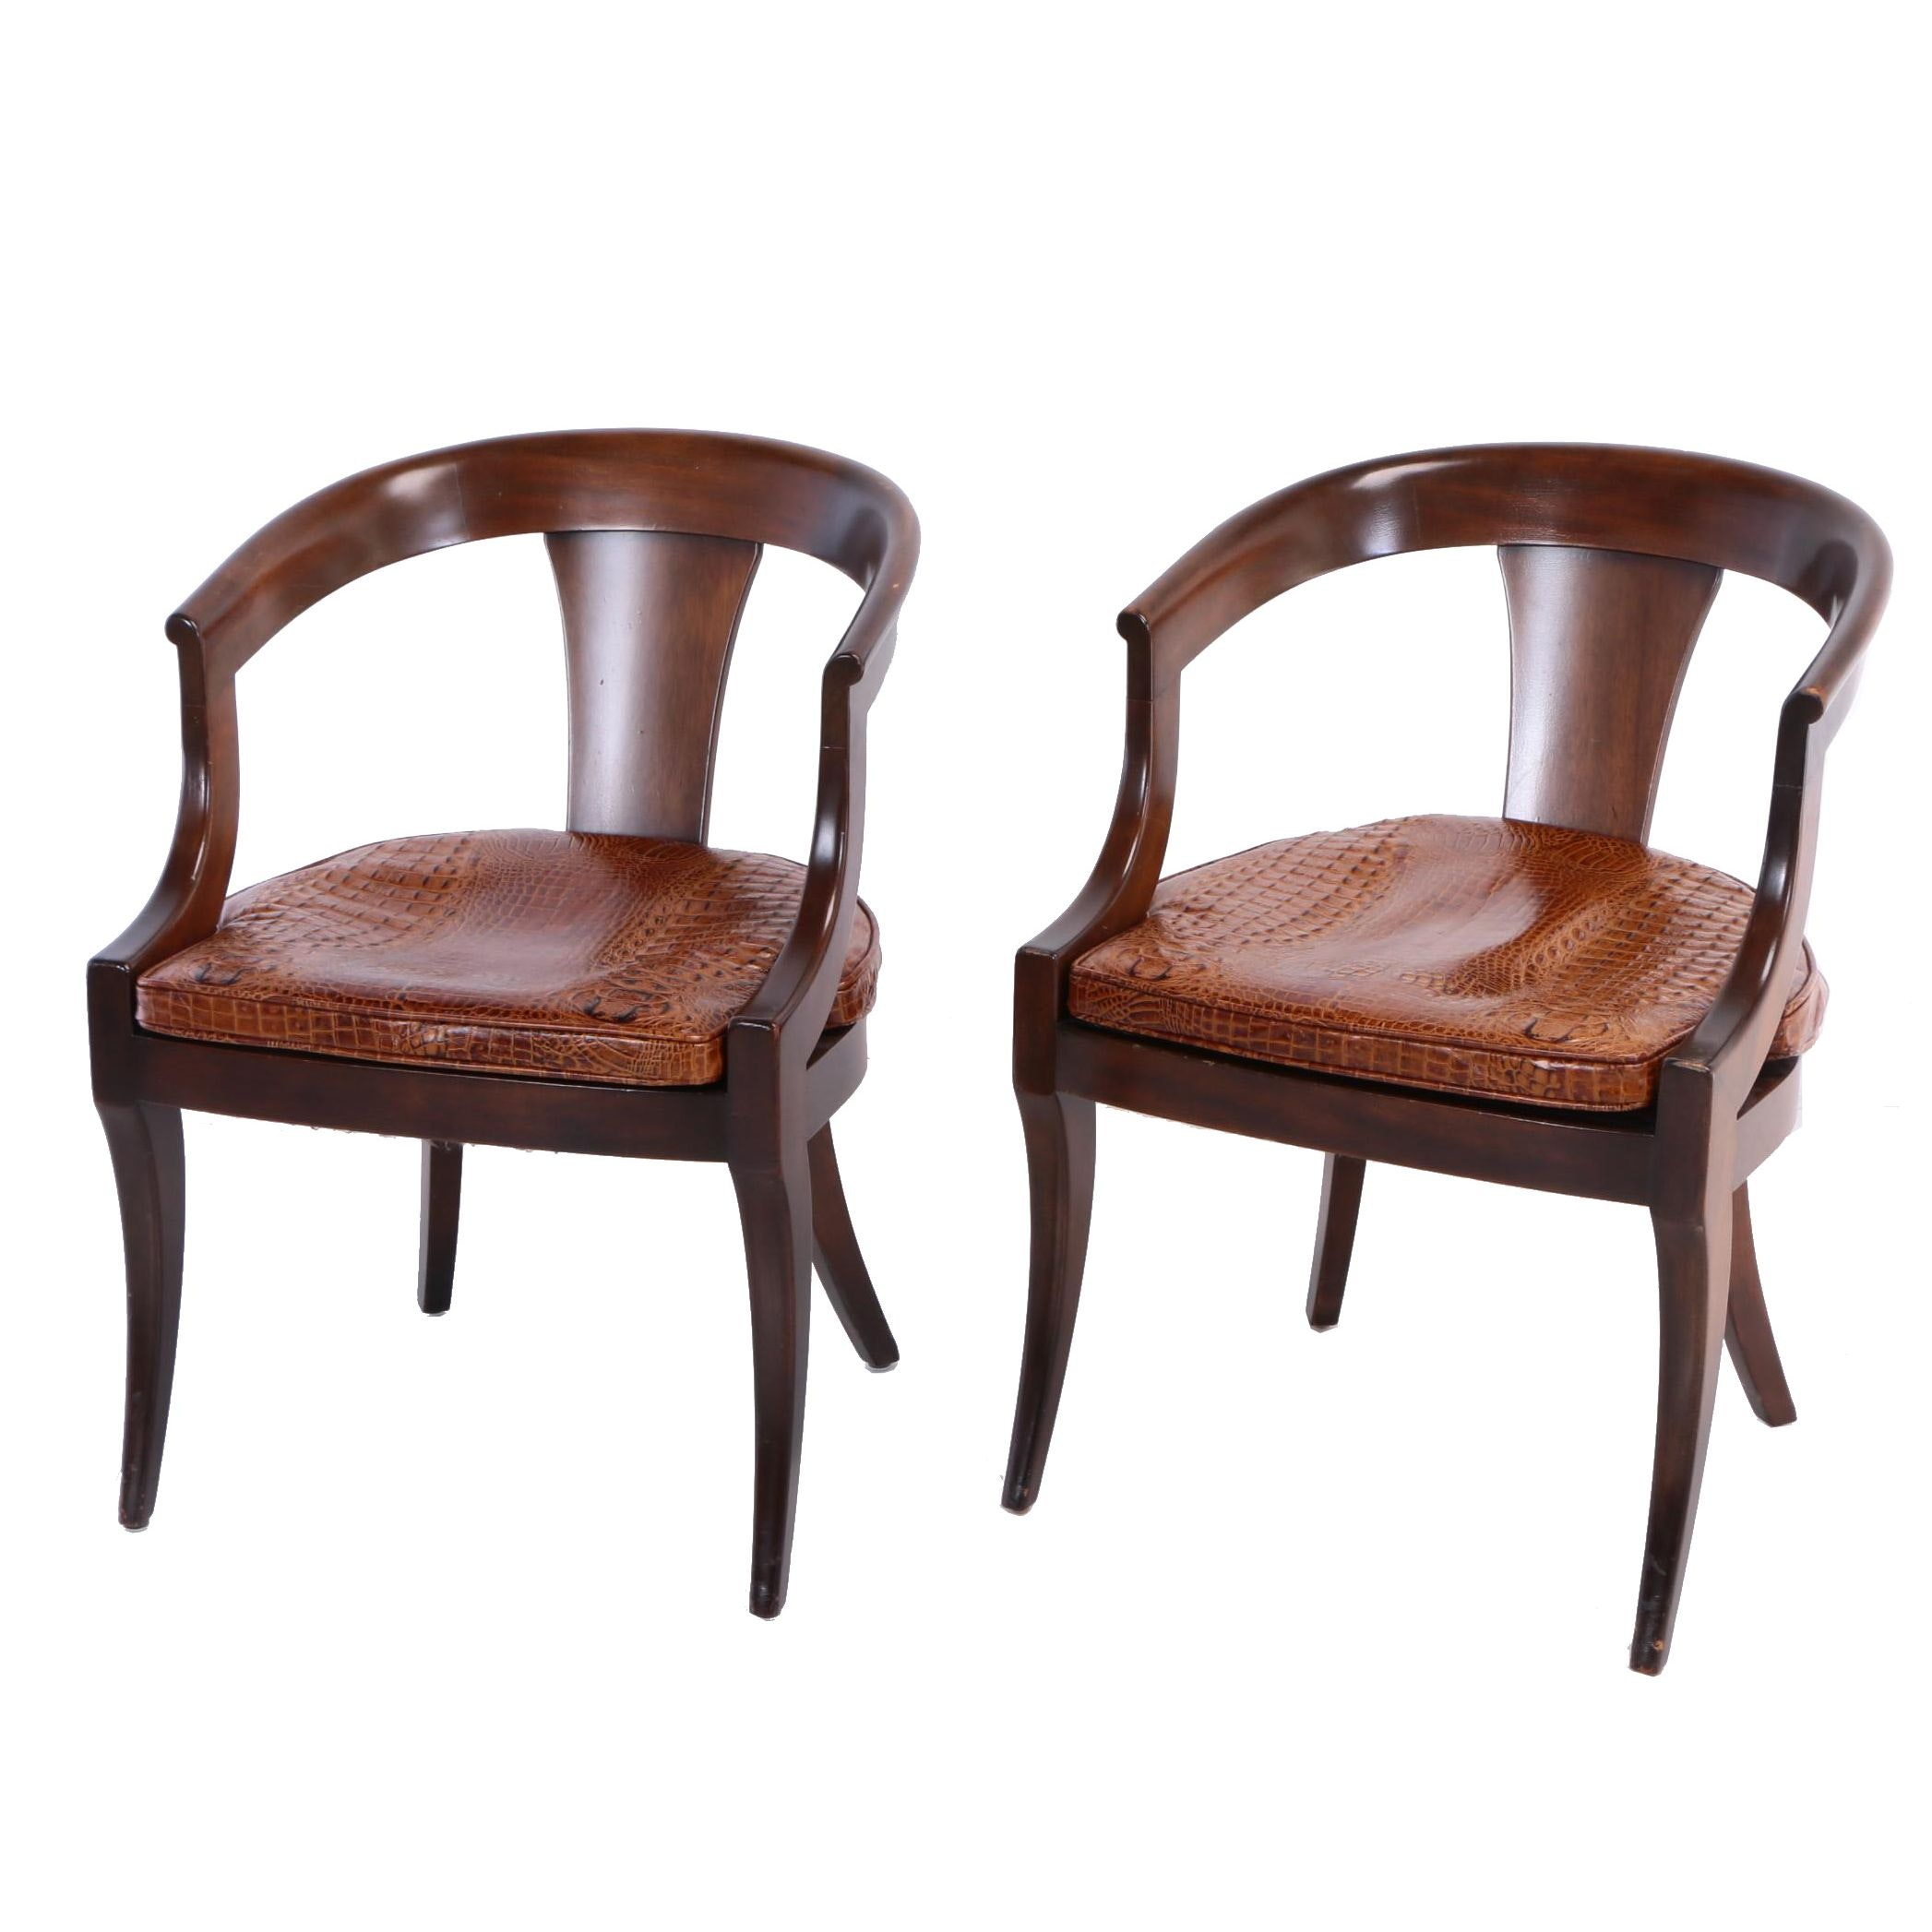 Pair of Mahogany Armchairs with Caiman-Embossed Leather Cushions, 20th Century